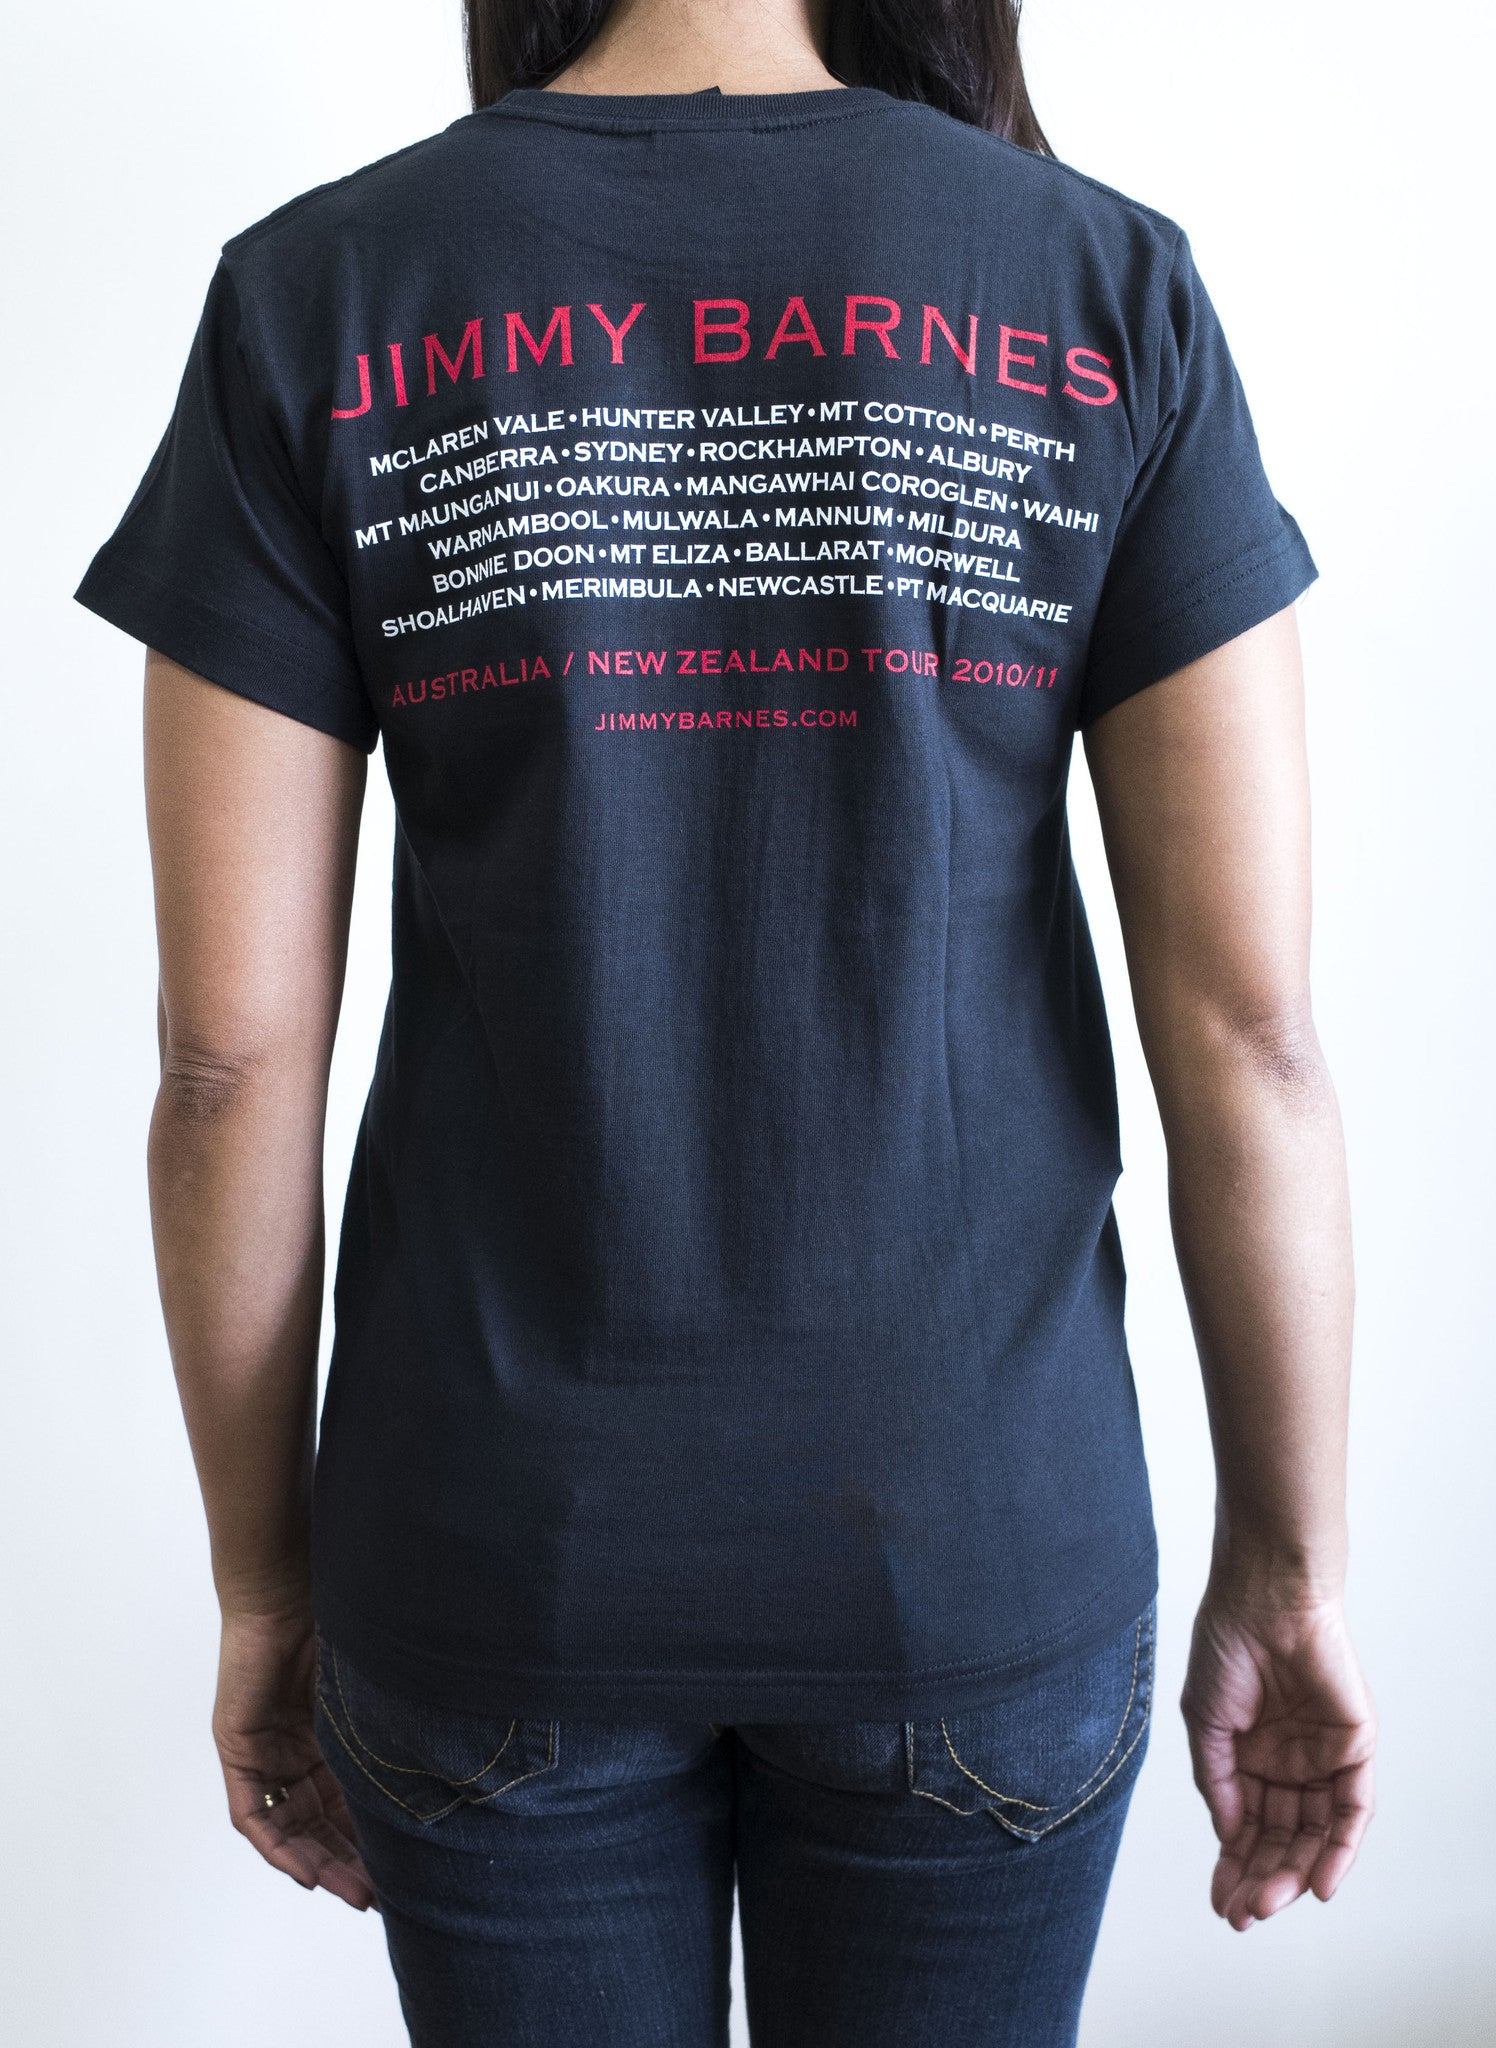 'Rage and Ruin' Tour T-Shirt - Jimmy Barnes Online Store